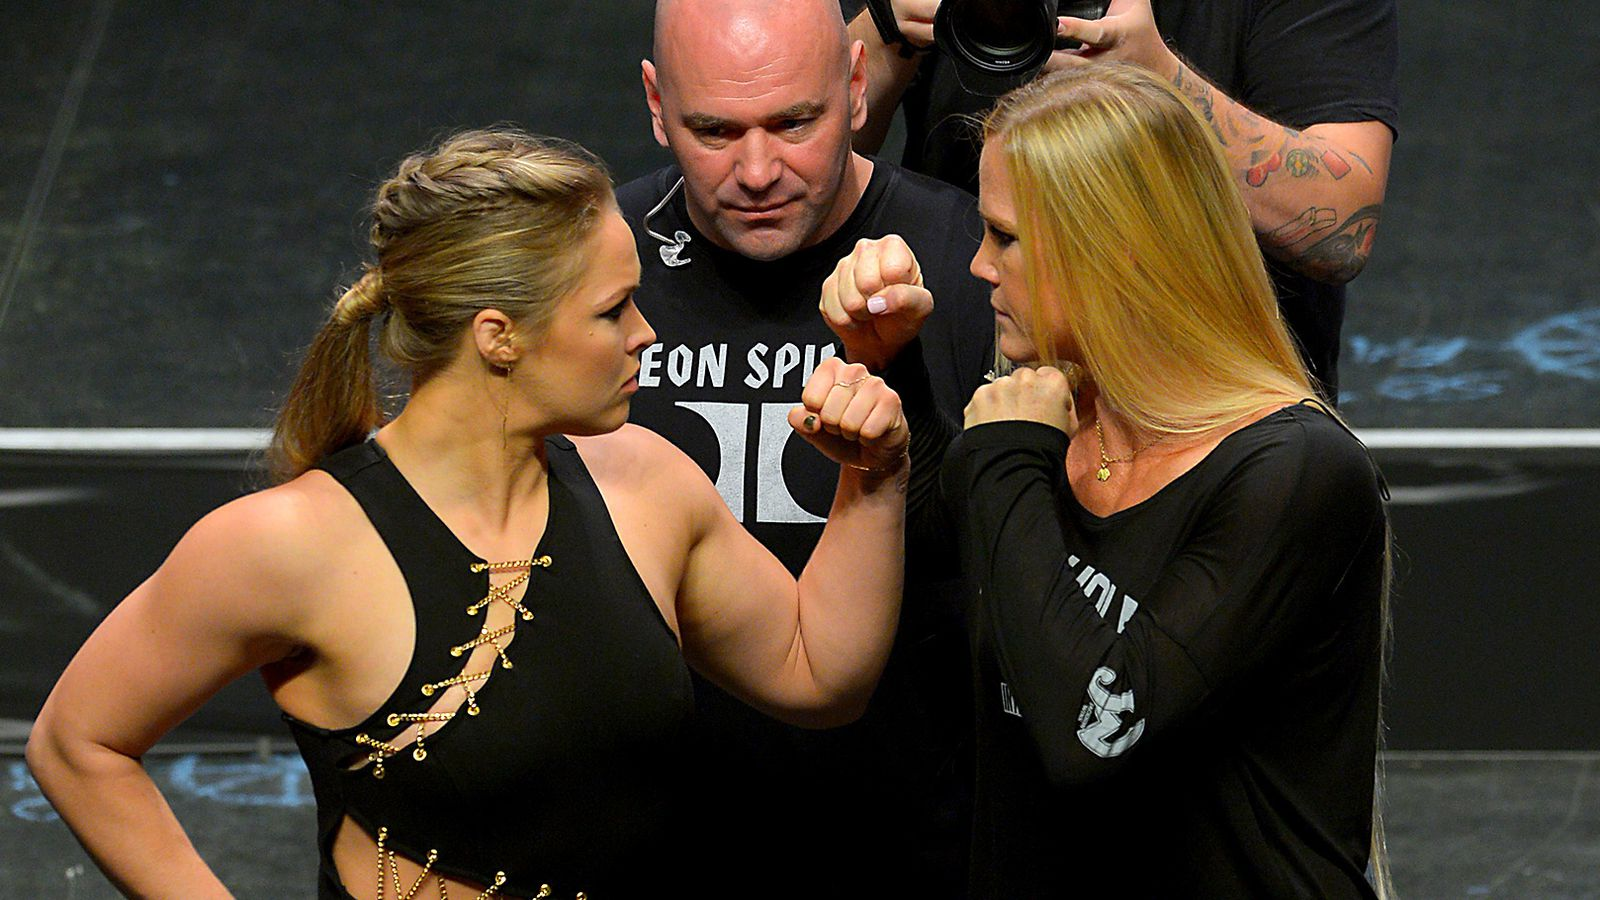 Ufc 193 Video Ronda Rousey Moved To Tears After Receiving